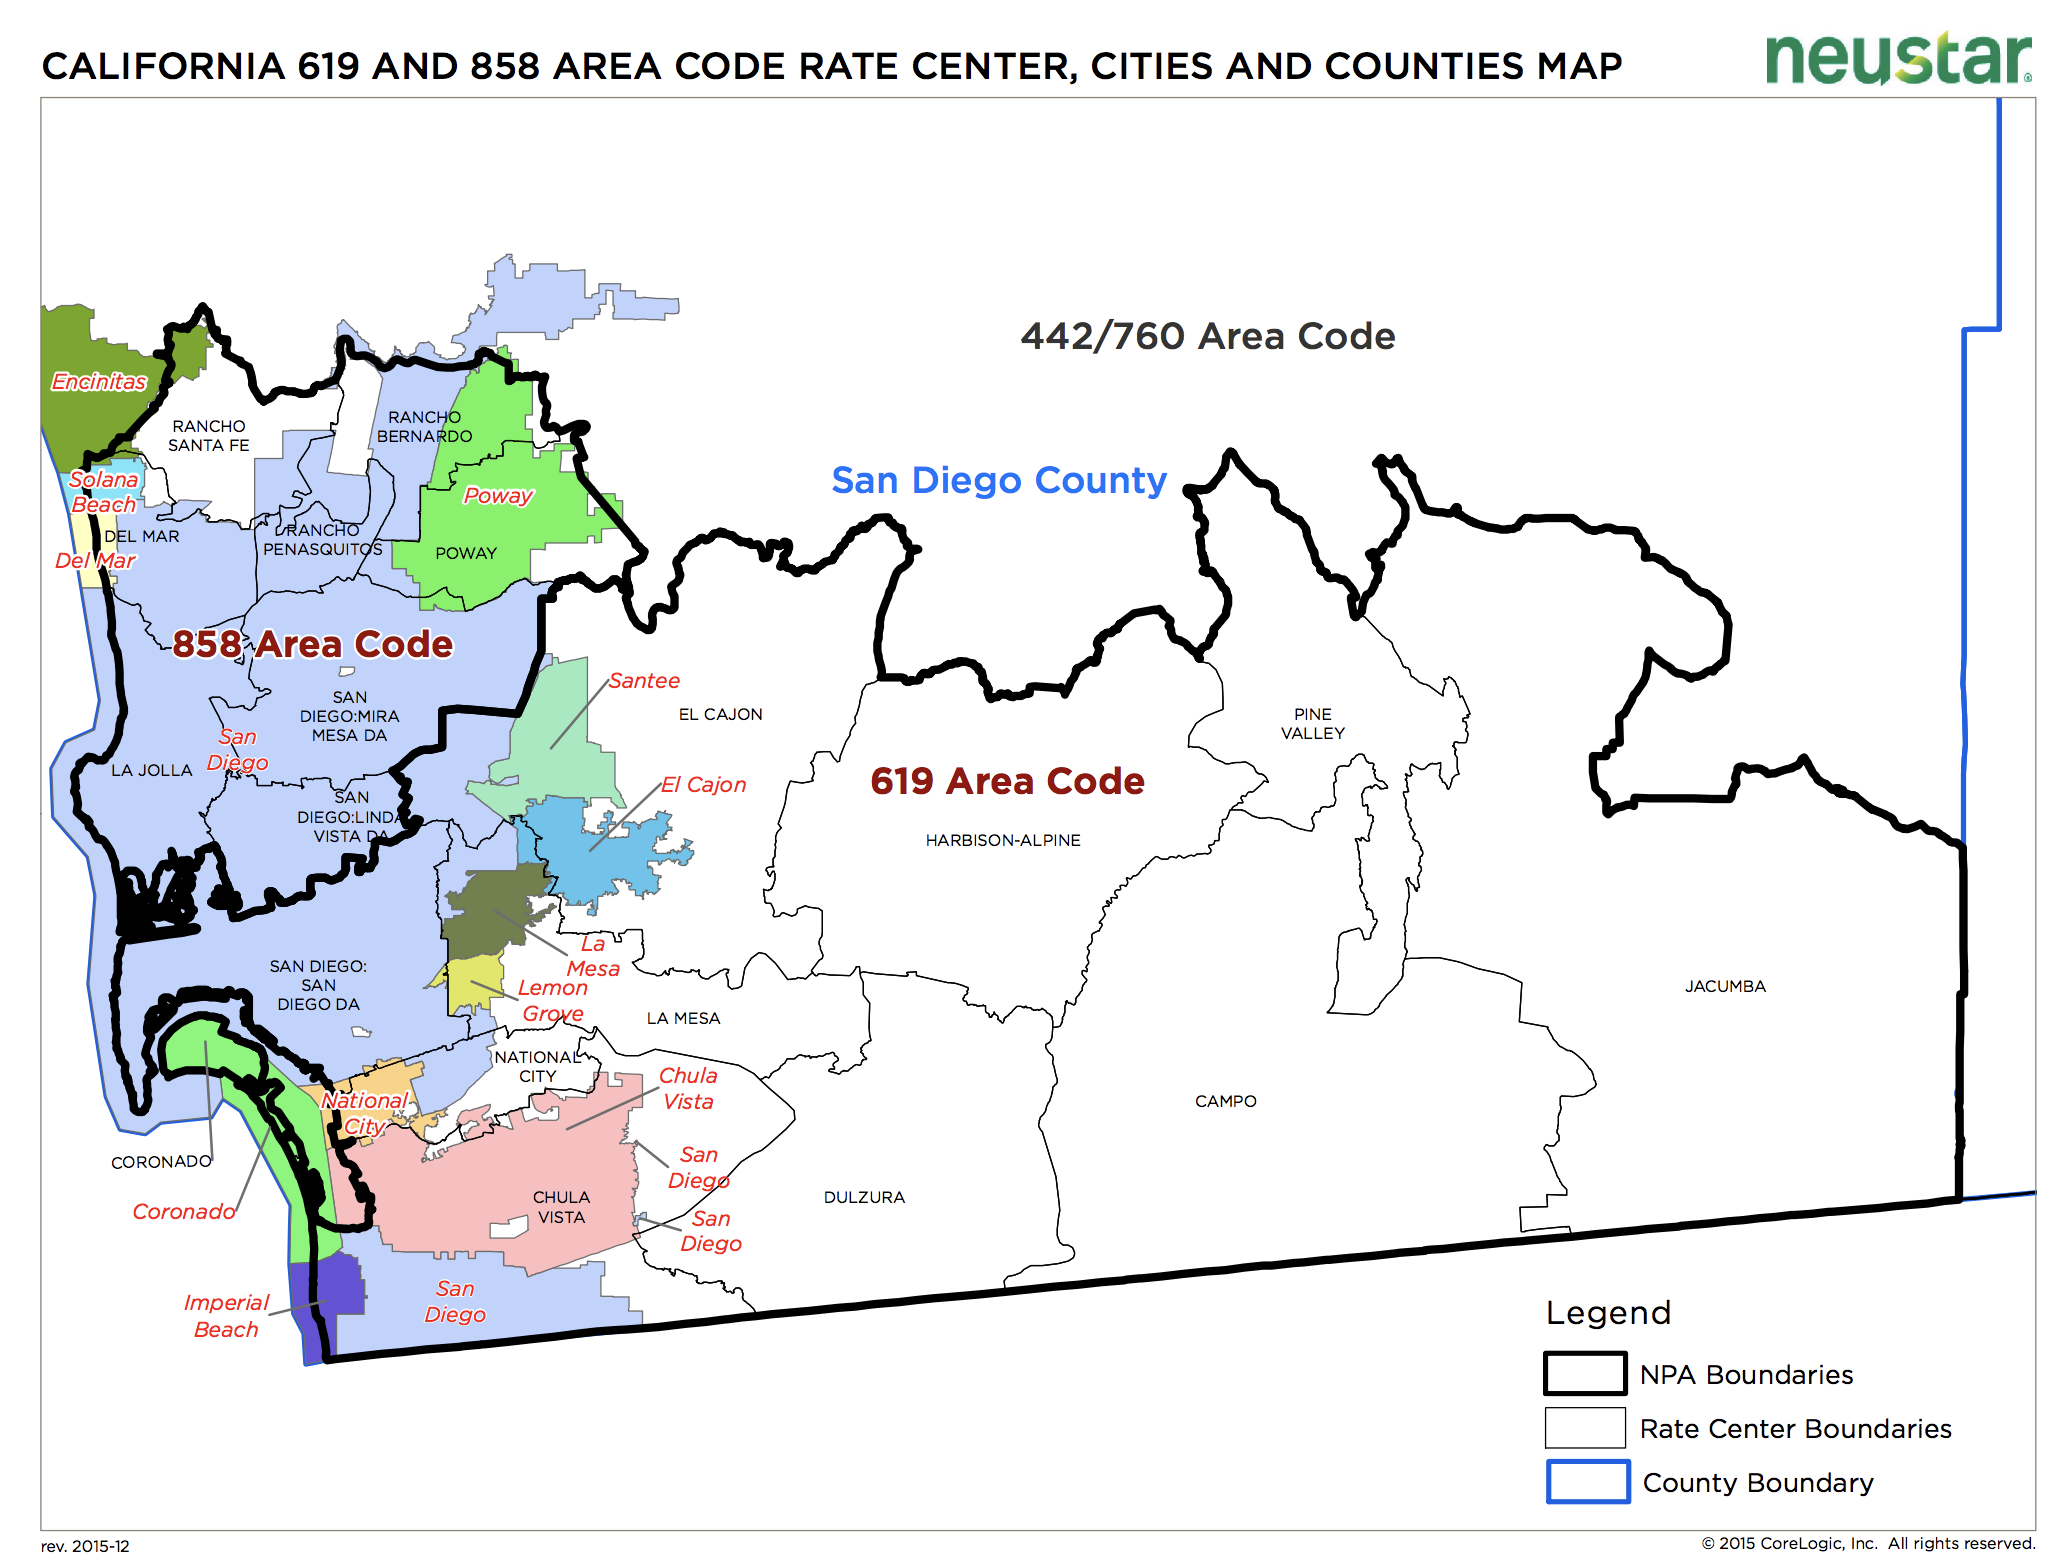 A map showing the geography of San Diego divided into sections by area codes (858 and 619) and rate center boundaries